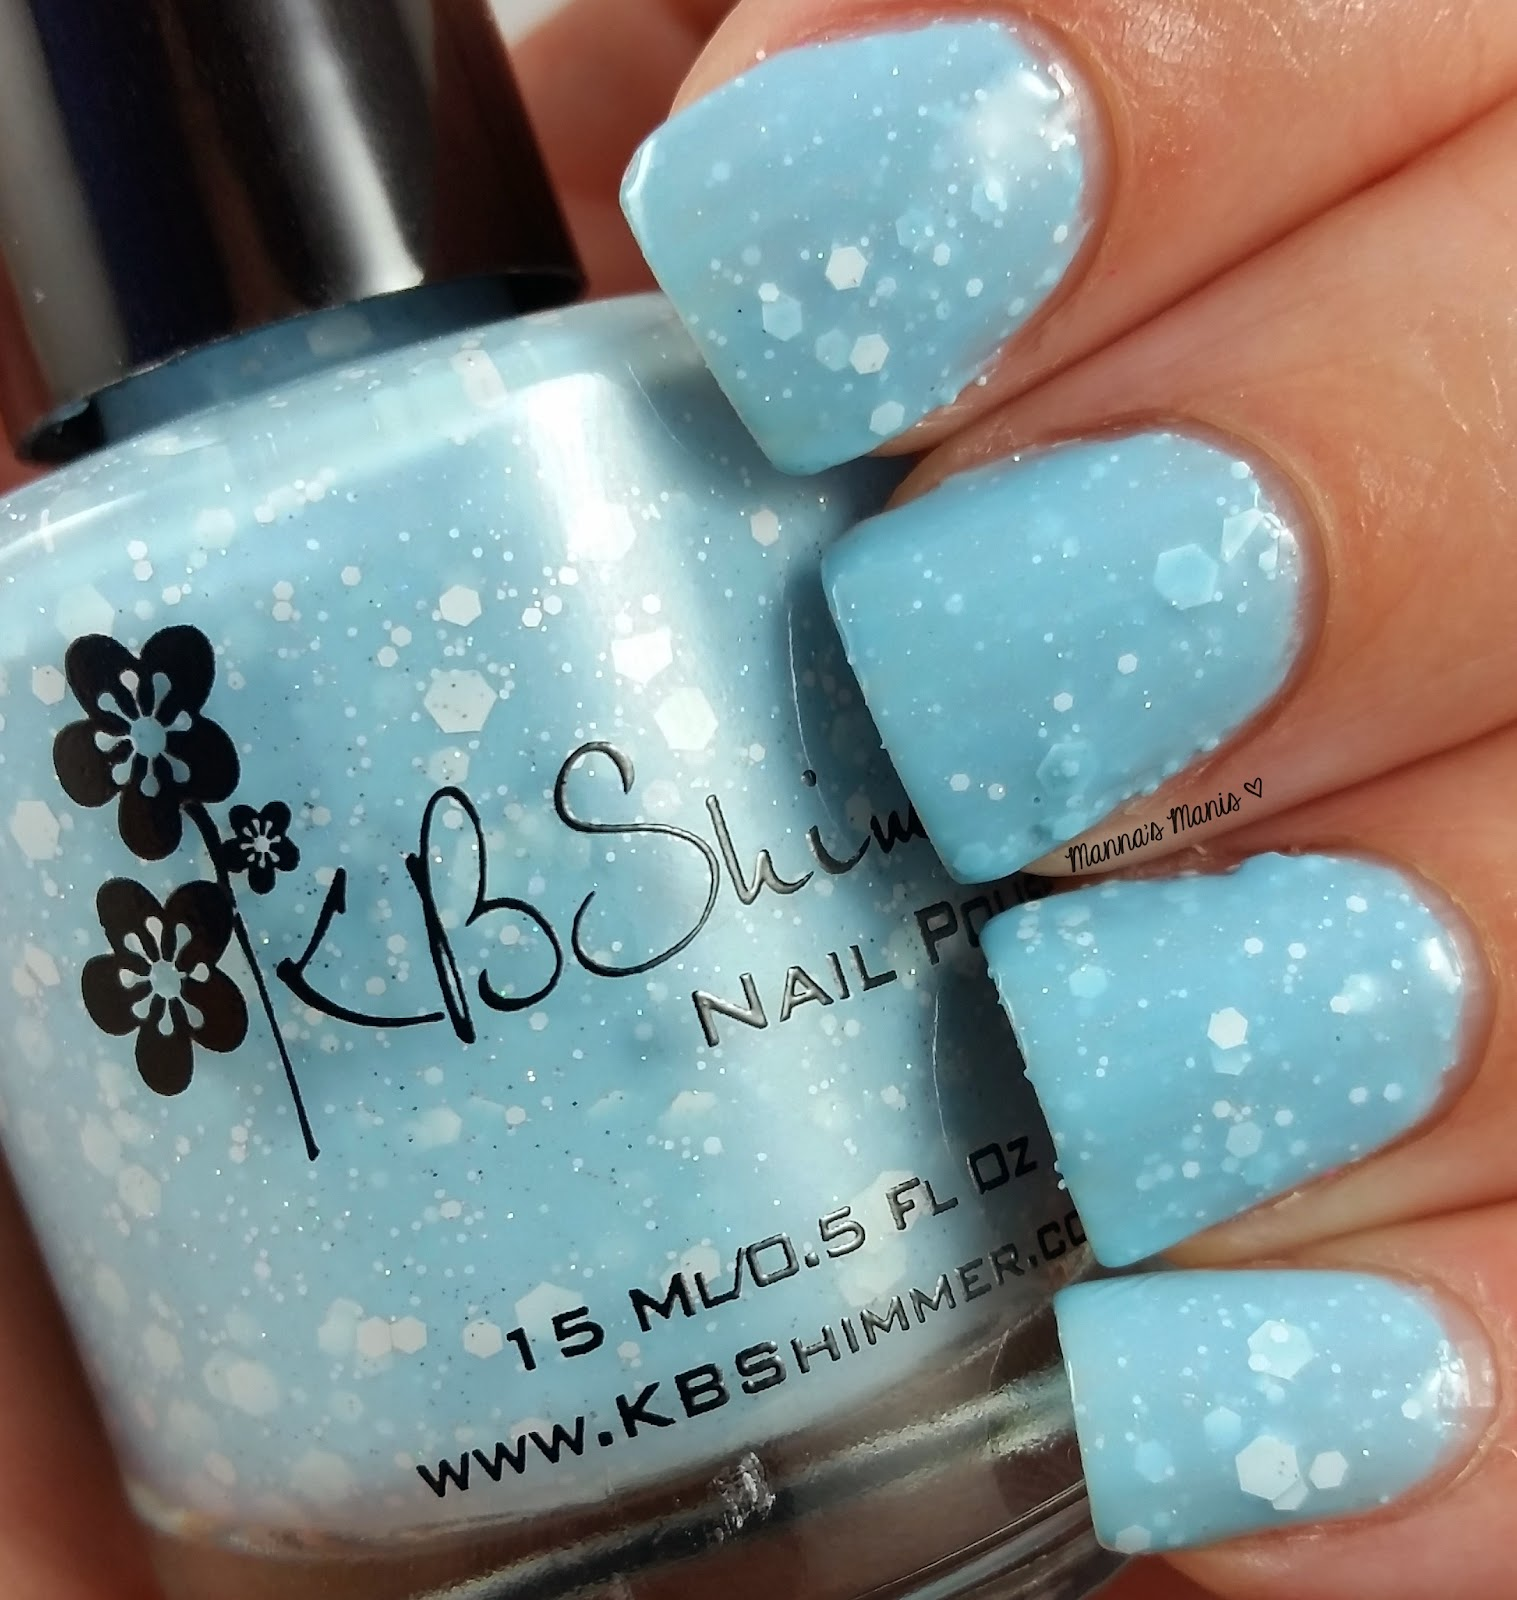 kbshimmer snow way, a pale blue crelly nail polish